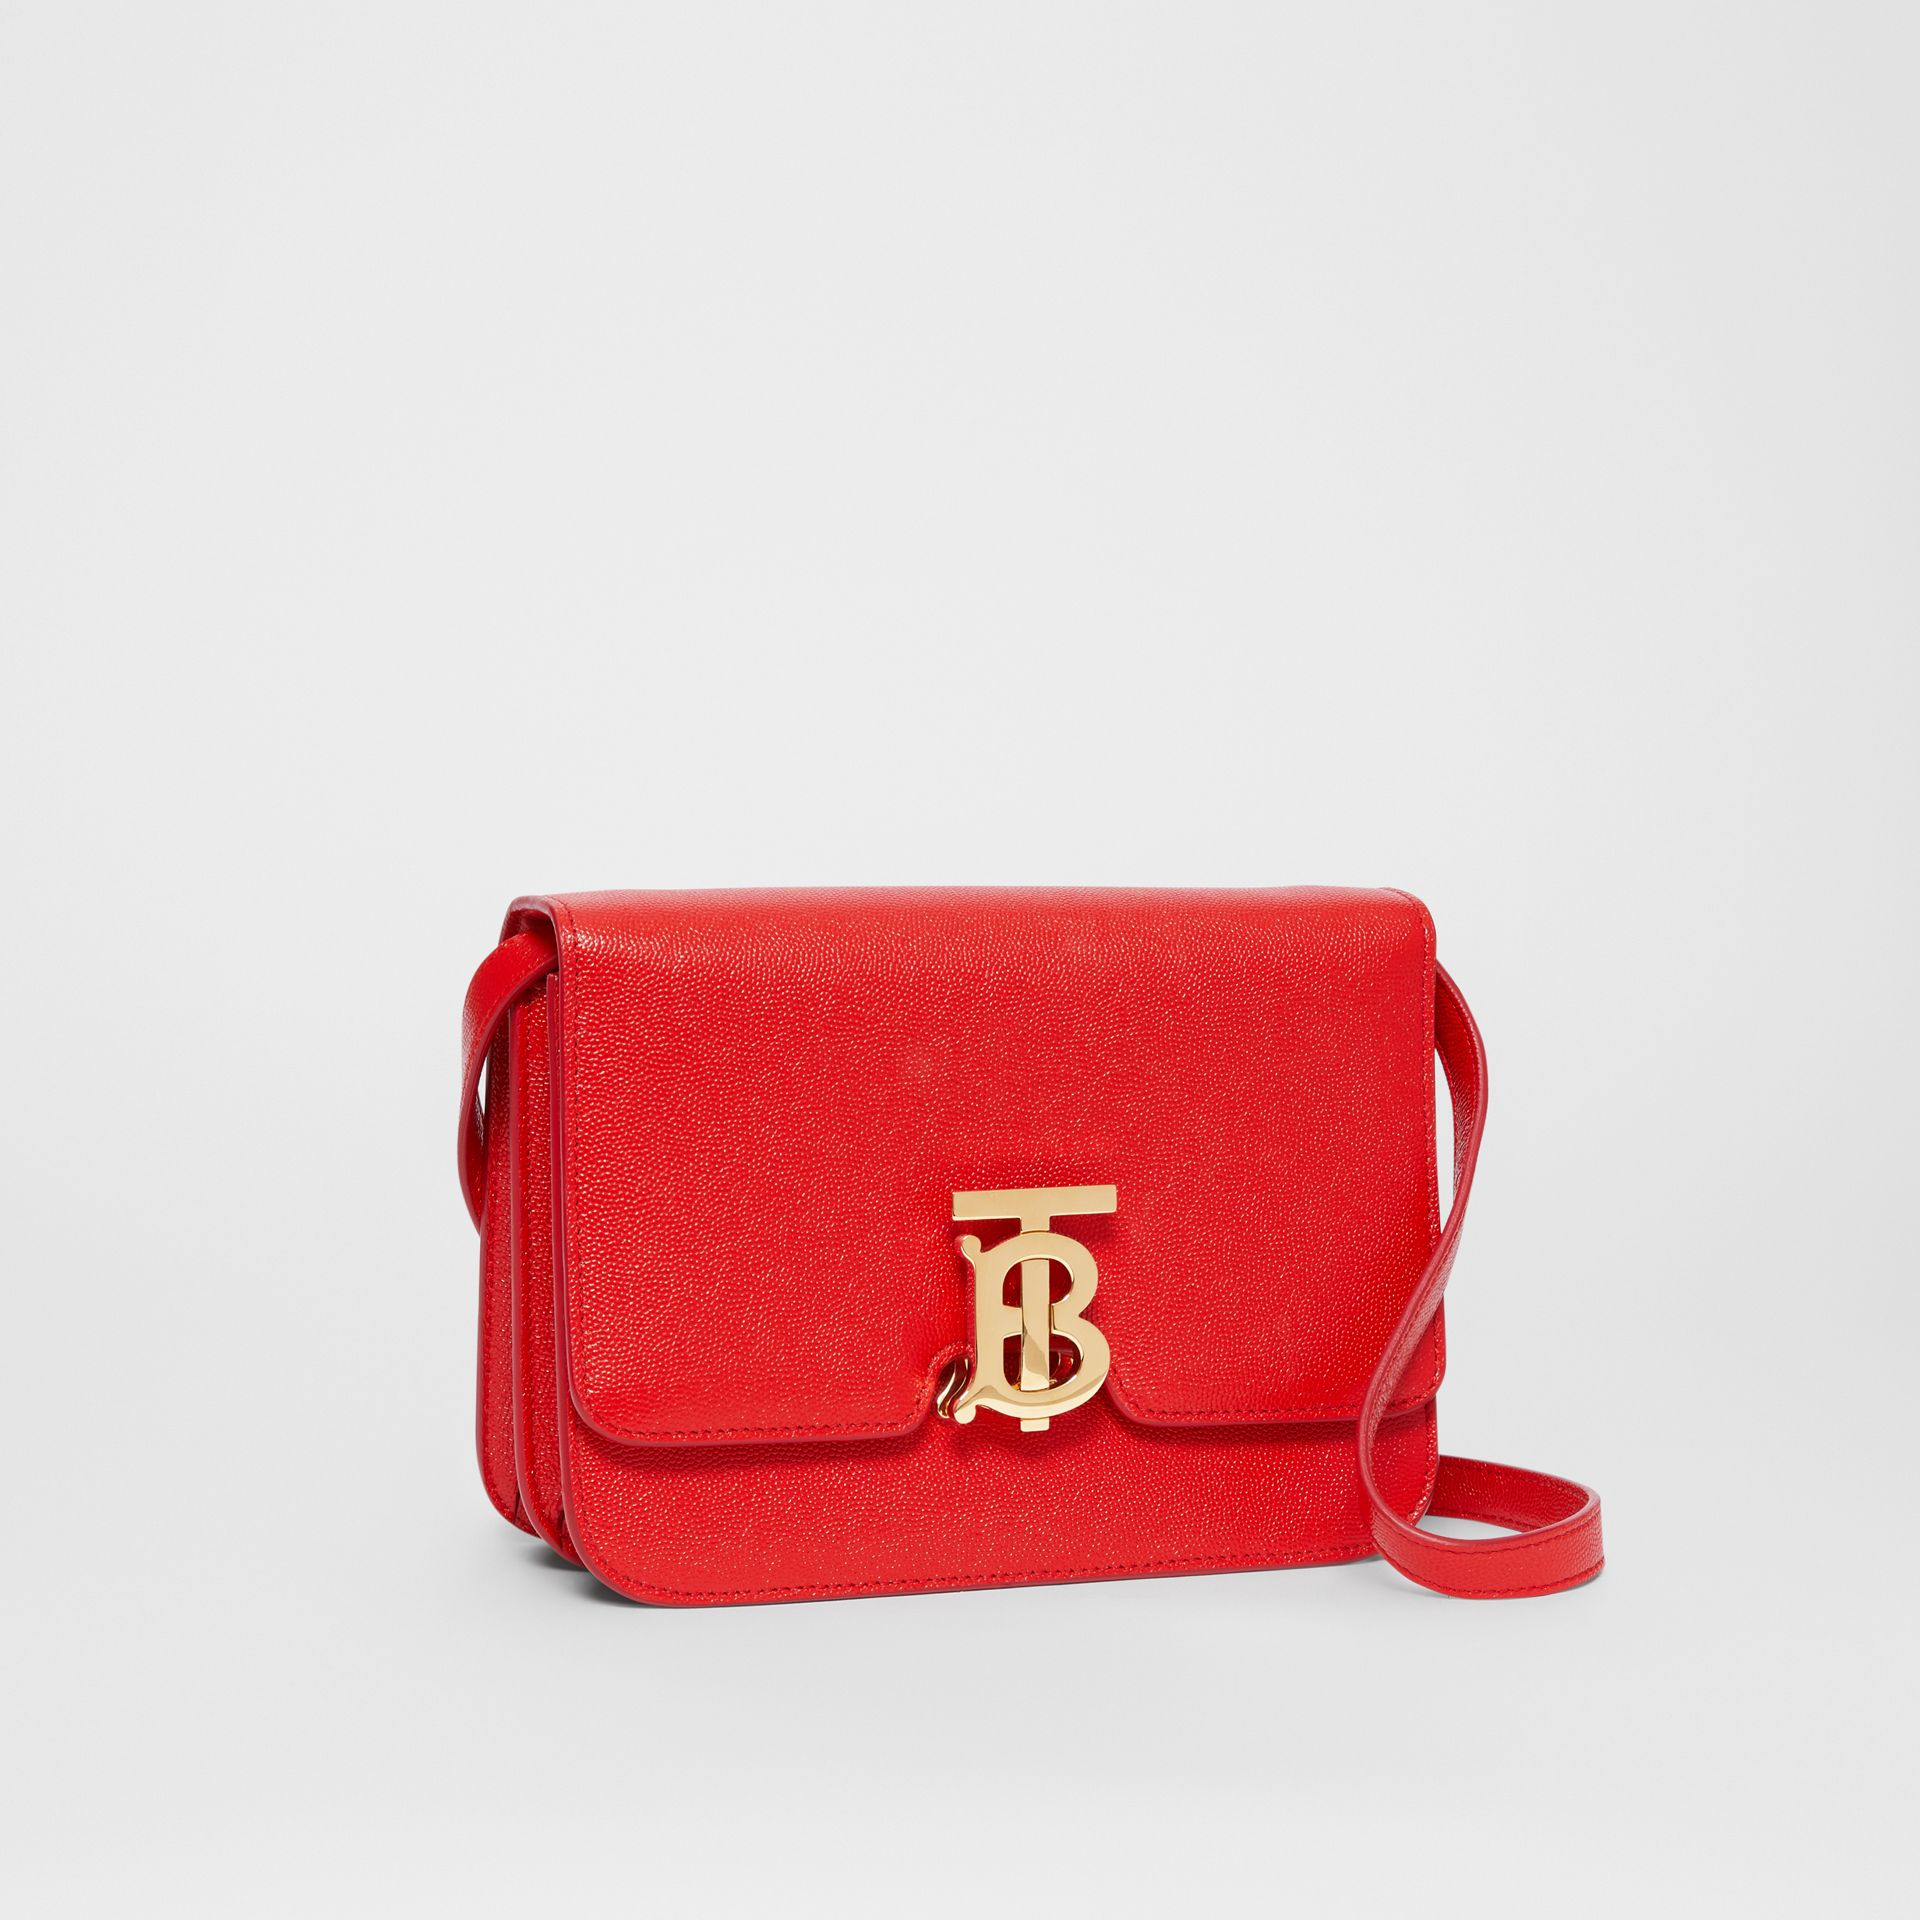 Small Grainy Leather TB Bag in Bright Red - Women | Burberry United Kingdom - gallery image 6